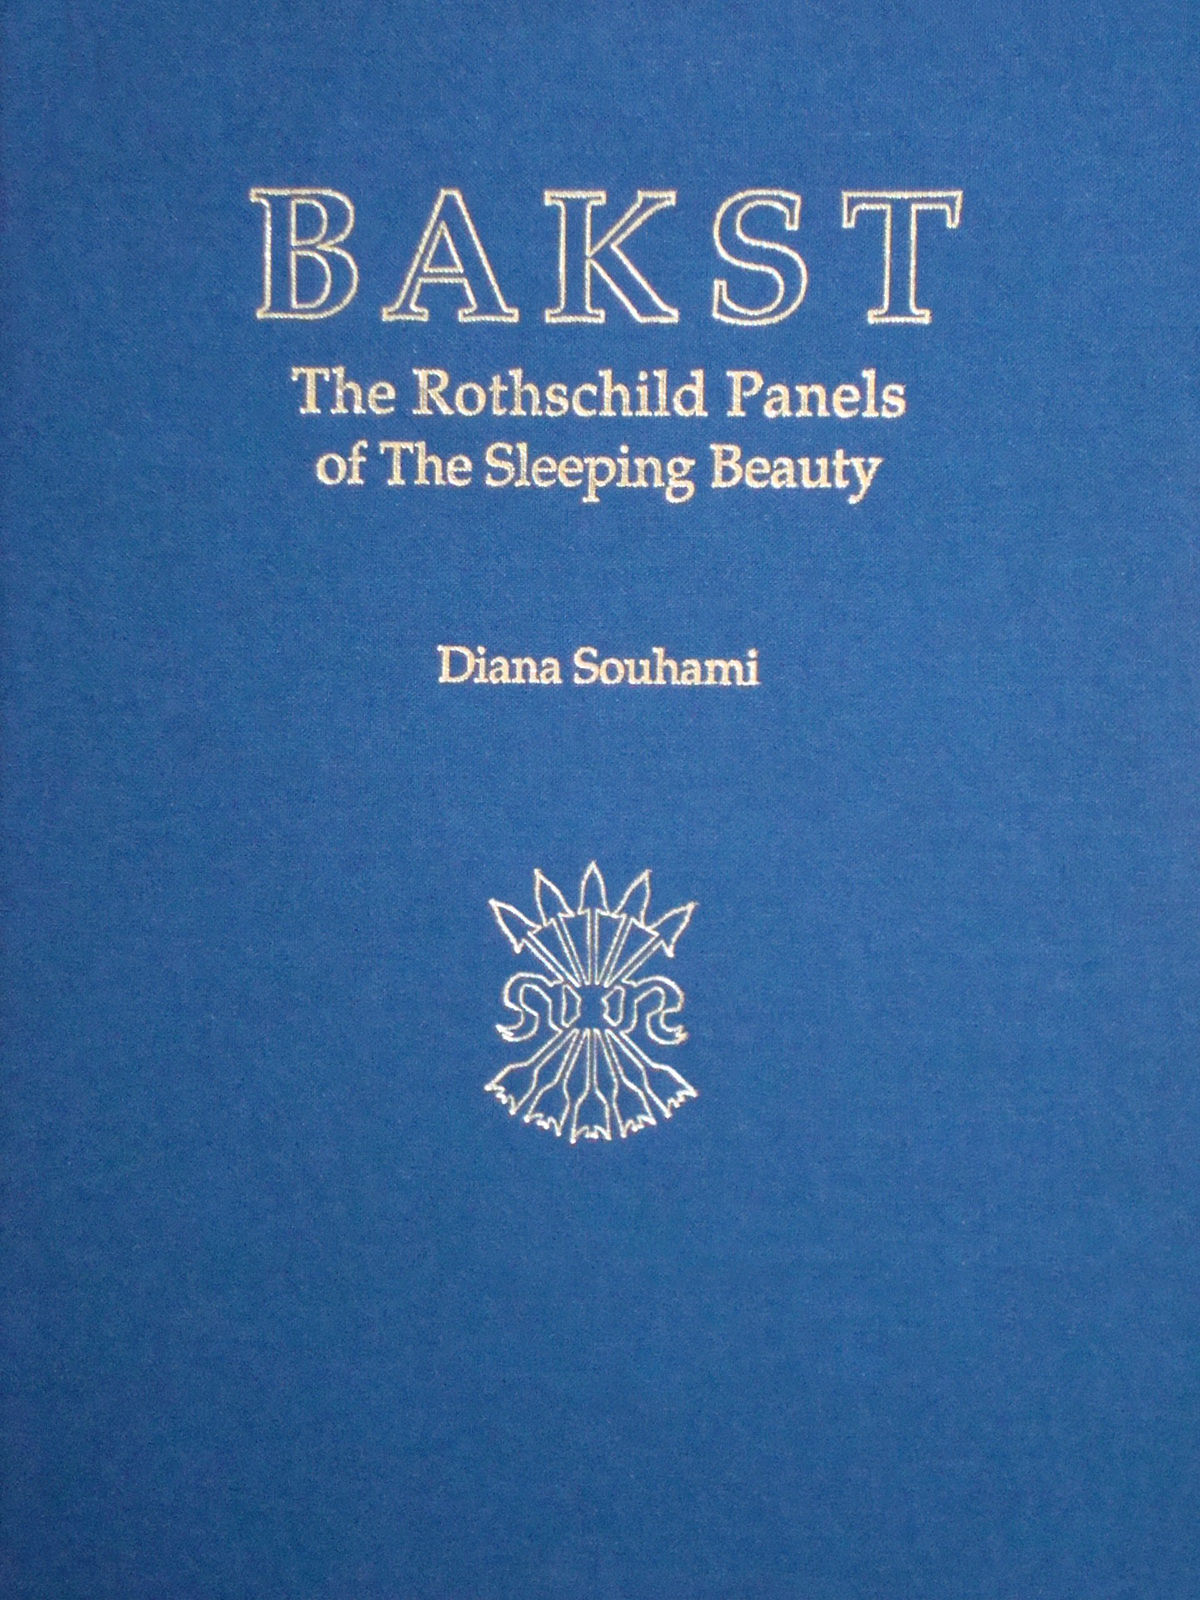 'Bakst: The Rothschild Panels of The Sleeping Beauty' by Diana Souhami